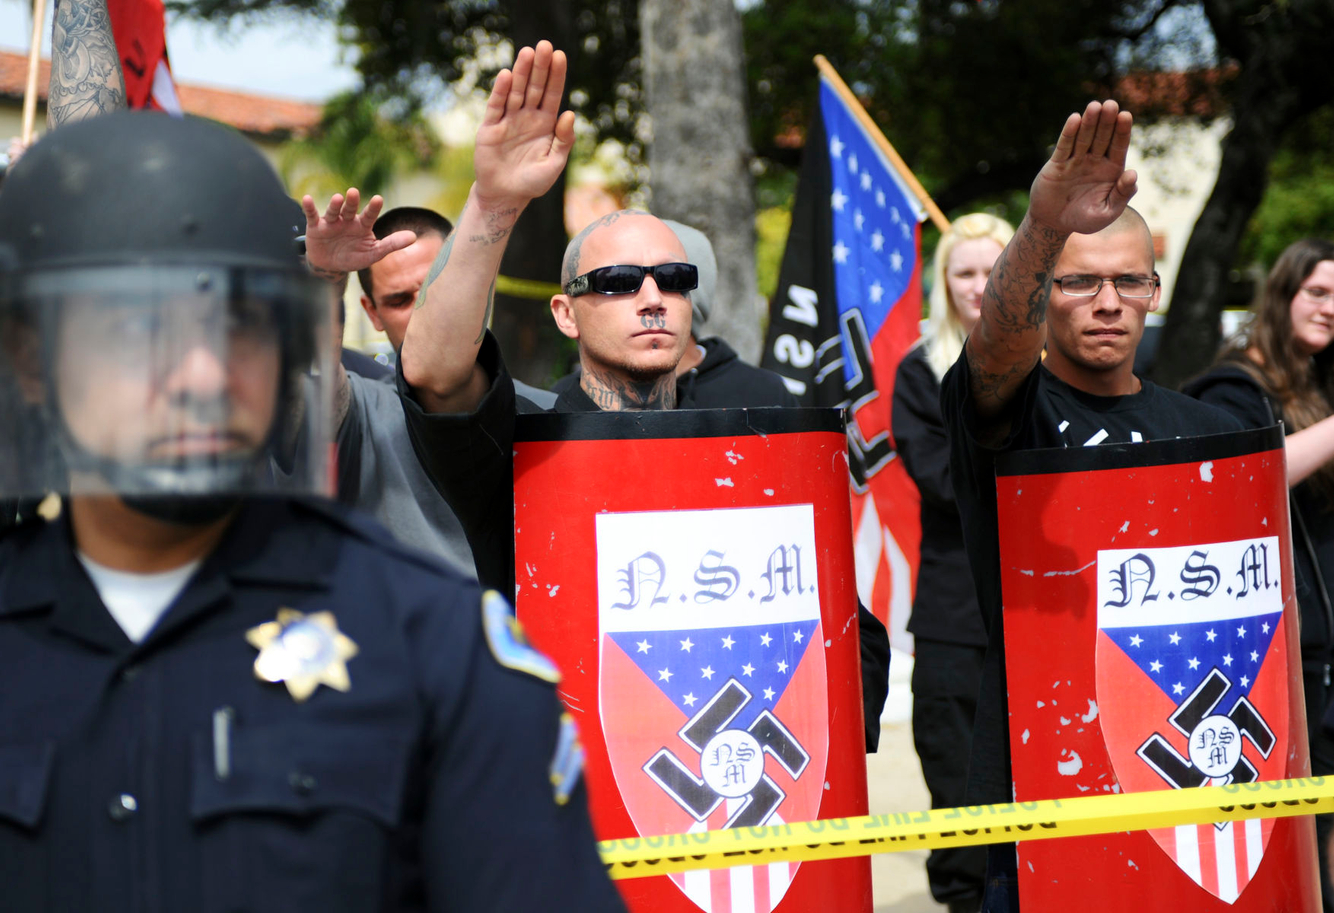 NAZI RALLY: Pro-Nazi supporters salute at a National Socialist Movement rally in Claremont, California